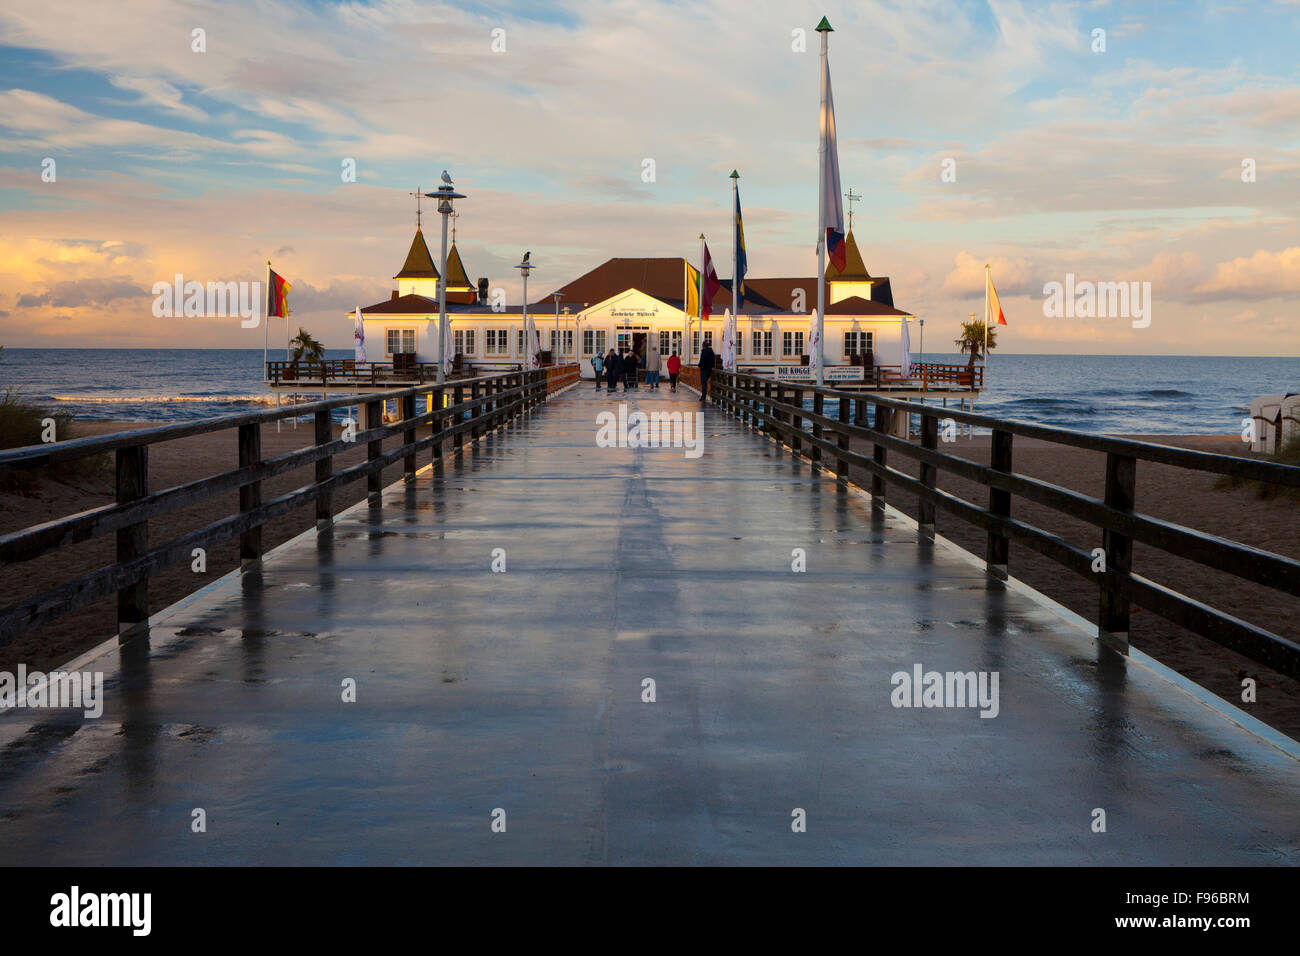 The Historic Pier in Ahlbeck on the Island of Usedom, Baltic Coast, MecklenburgVorpommern, Germany NO MODEL RELEASE - Stock Image